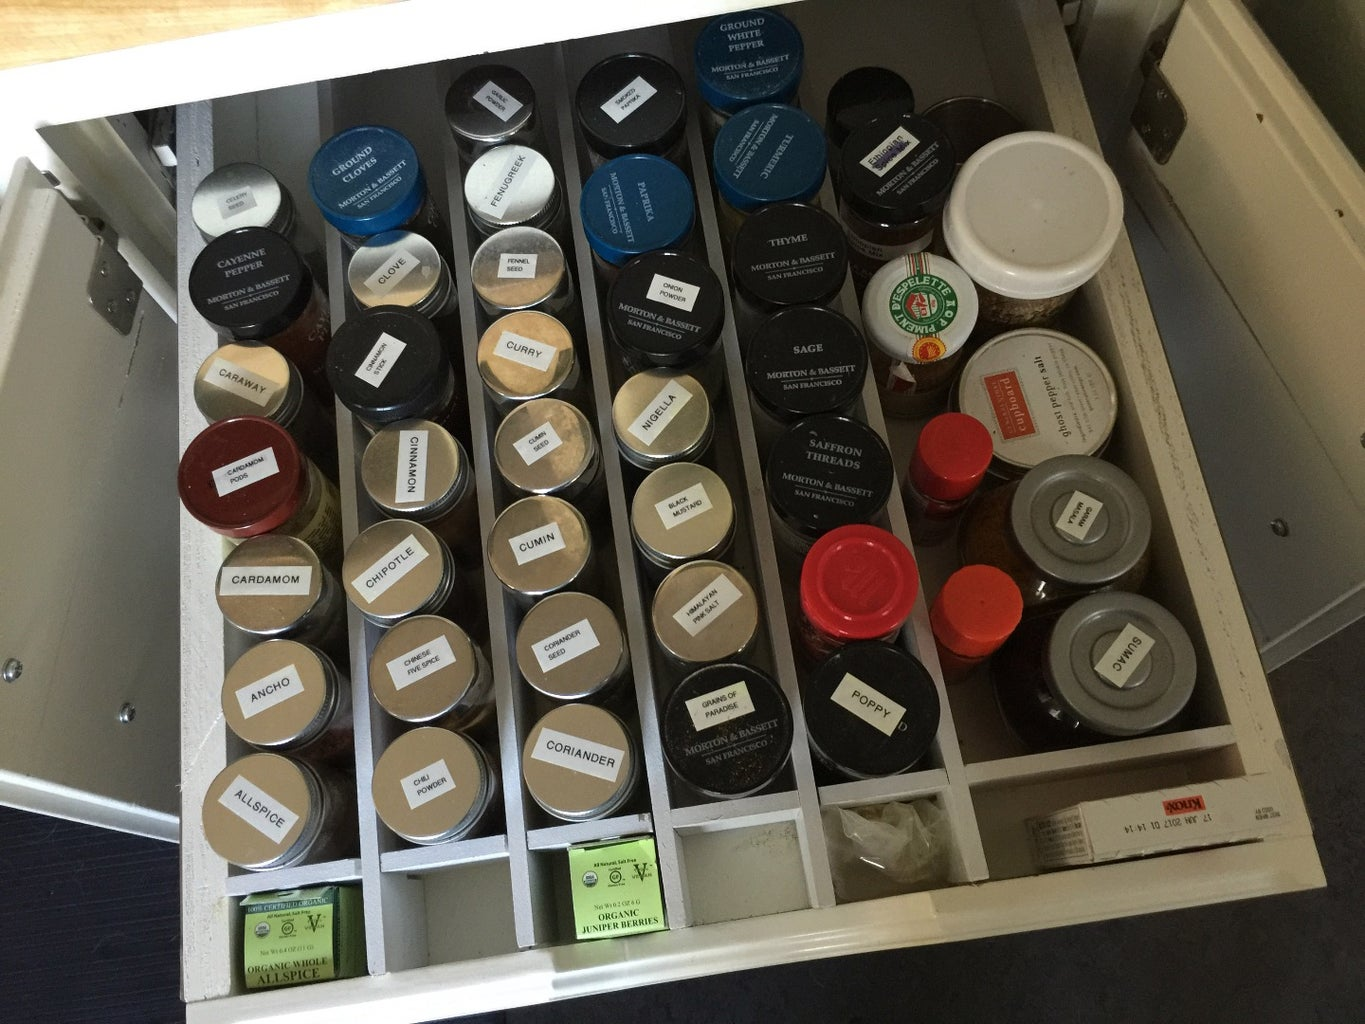 Drawer Organizer: Custom Fit to Your Drawer and Contents